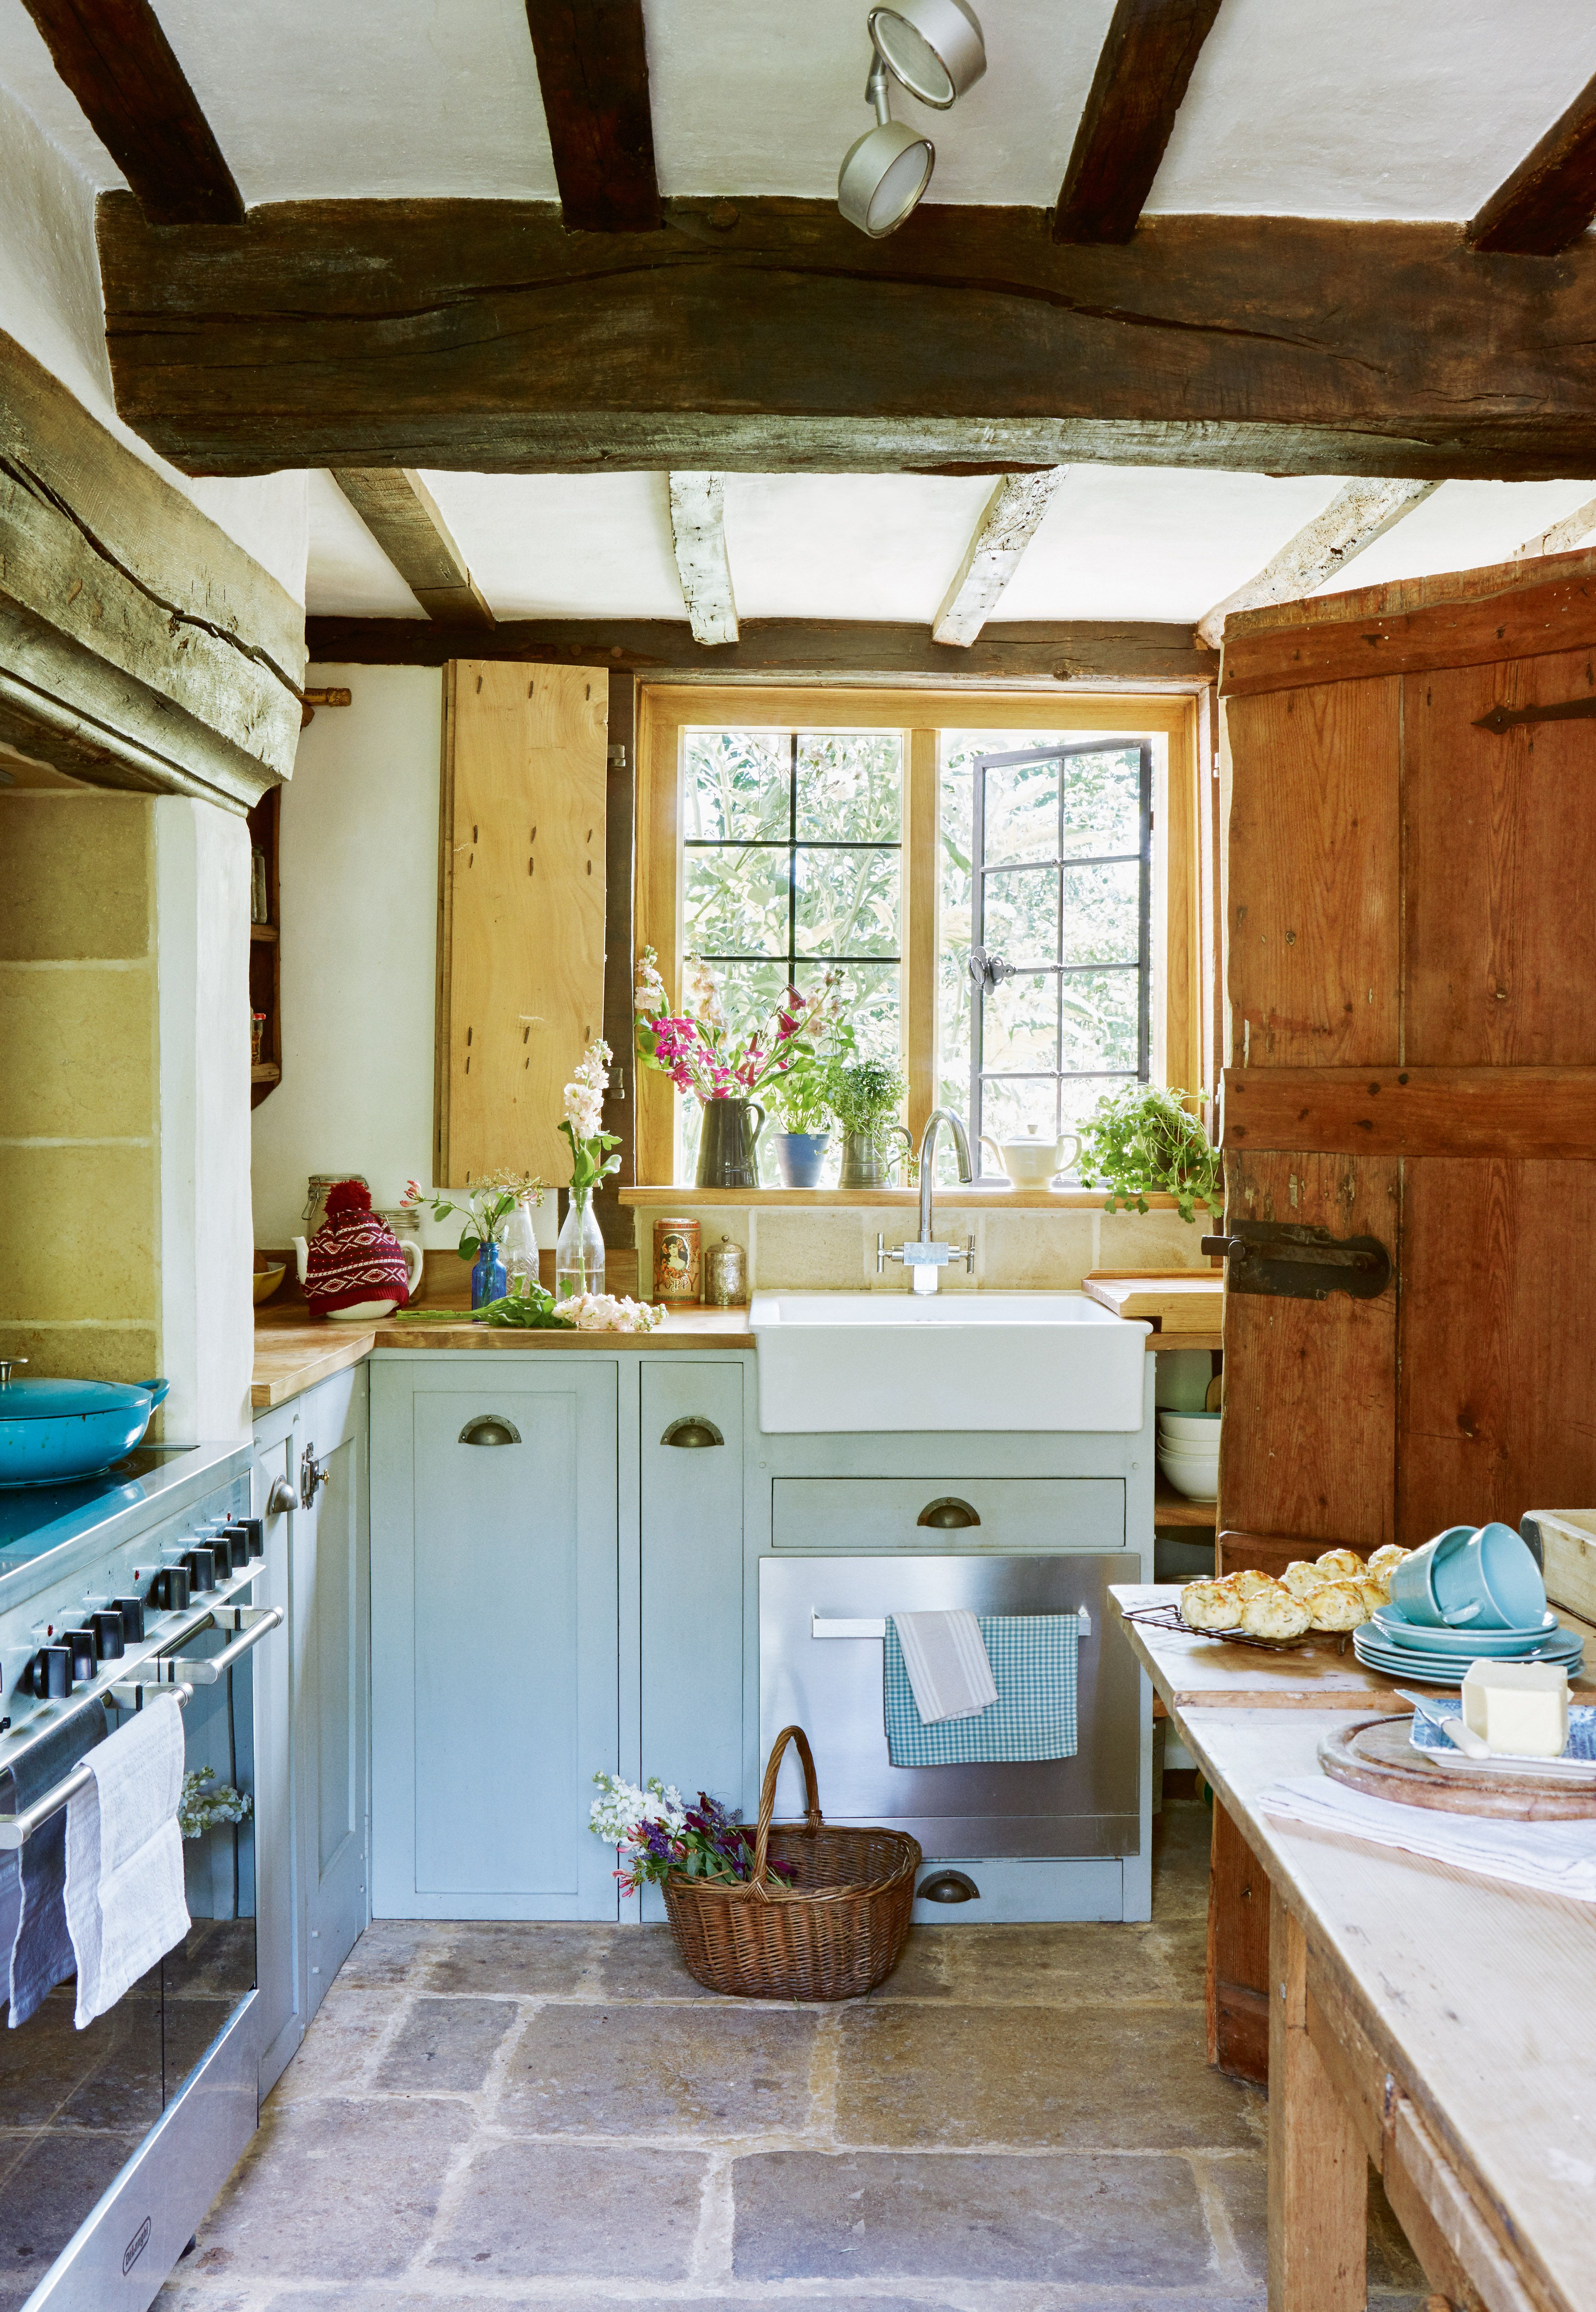 16 traditional country kitchen ideas | English Country Cottage ...